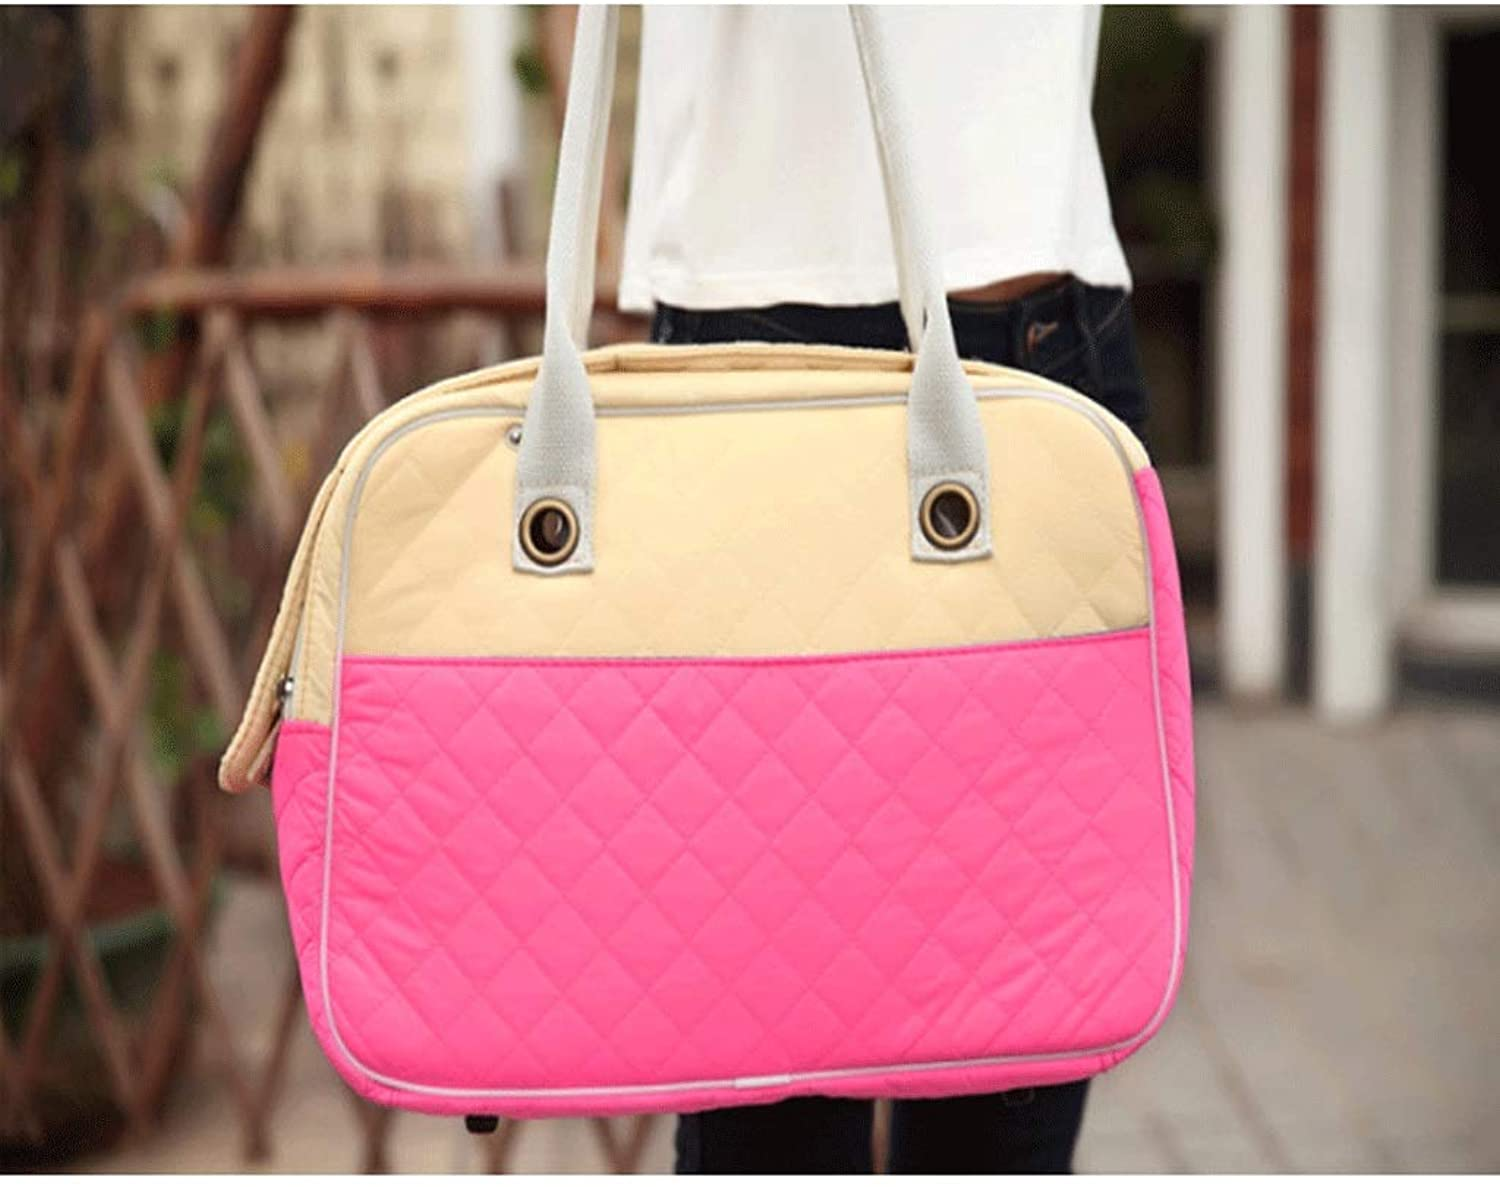 HAOCAI Pet Bag Thick And Convenient Breathable Handbag Outdoor Travel Mall Hand Bag Breathable Ushaped Top (color   PINK, Size   45x18x30cm)